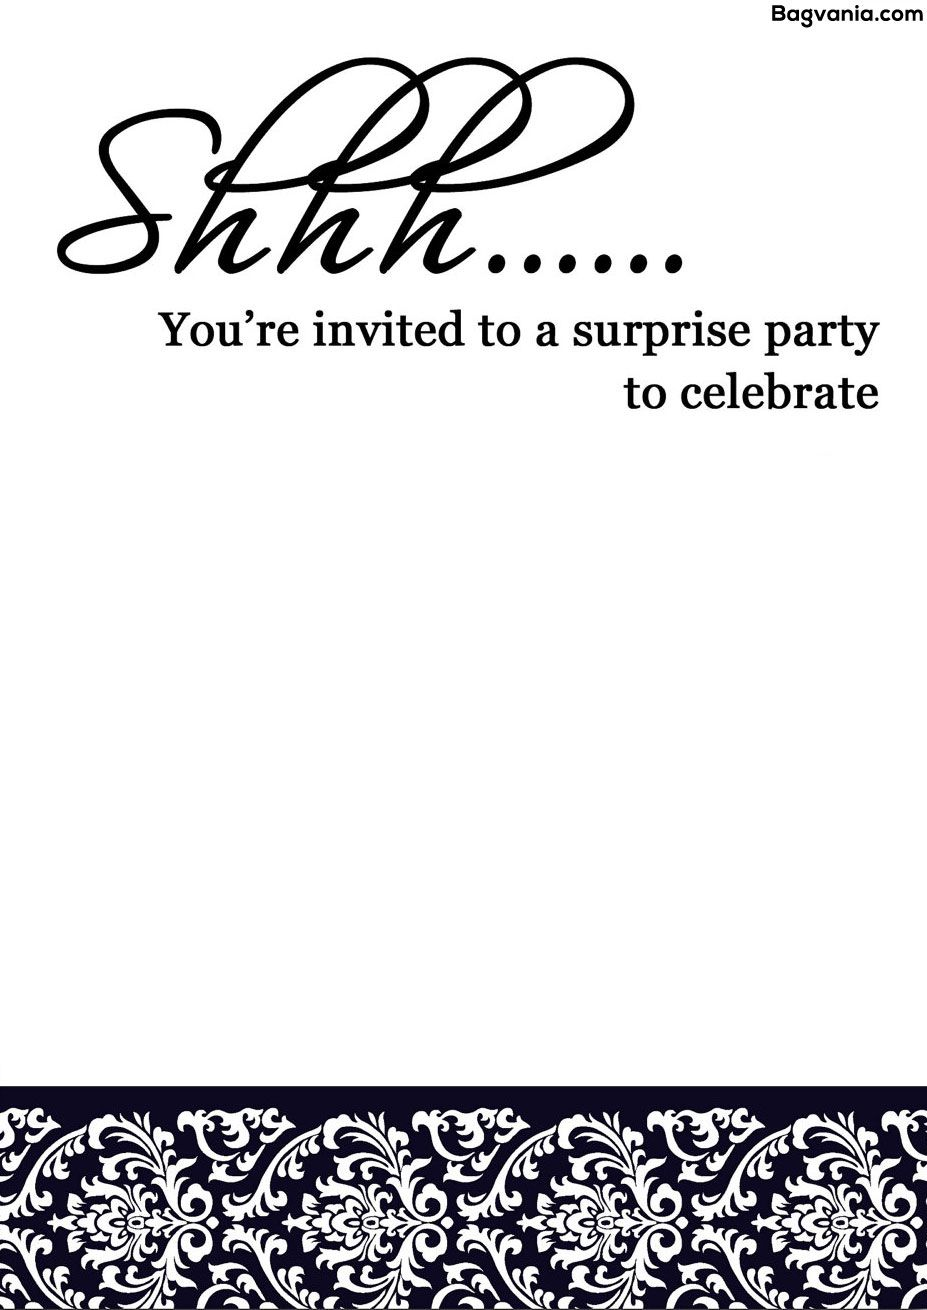 free printable surprise birthday invitations  u2013 bagvania free printable invitation template